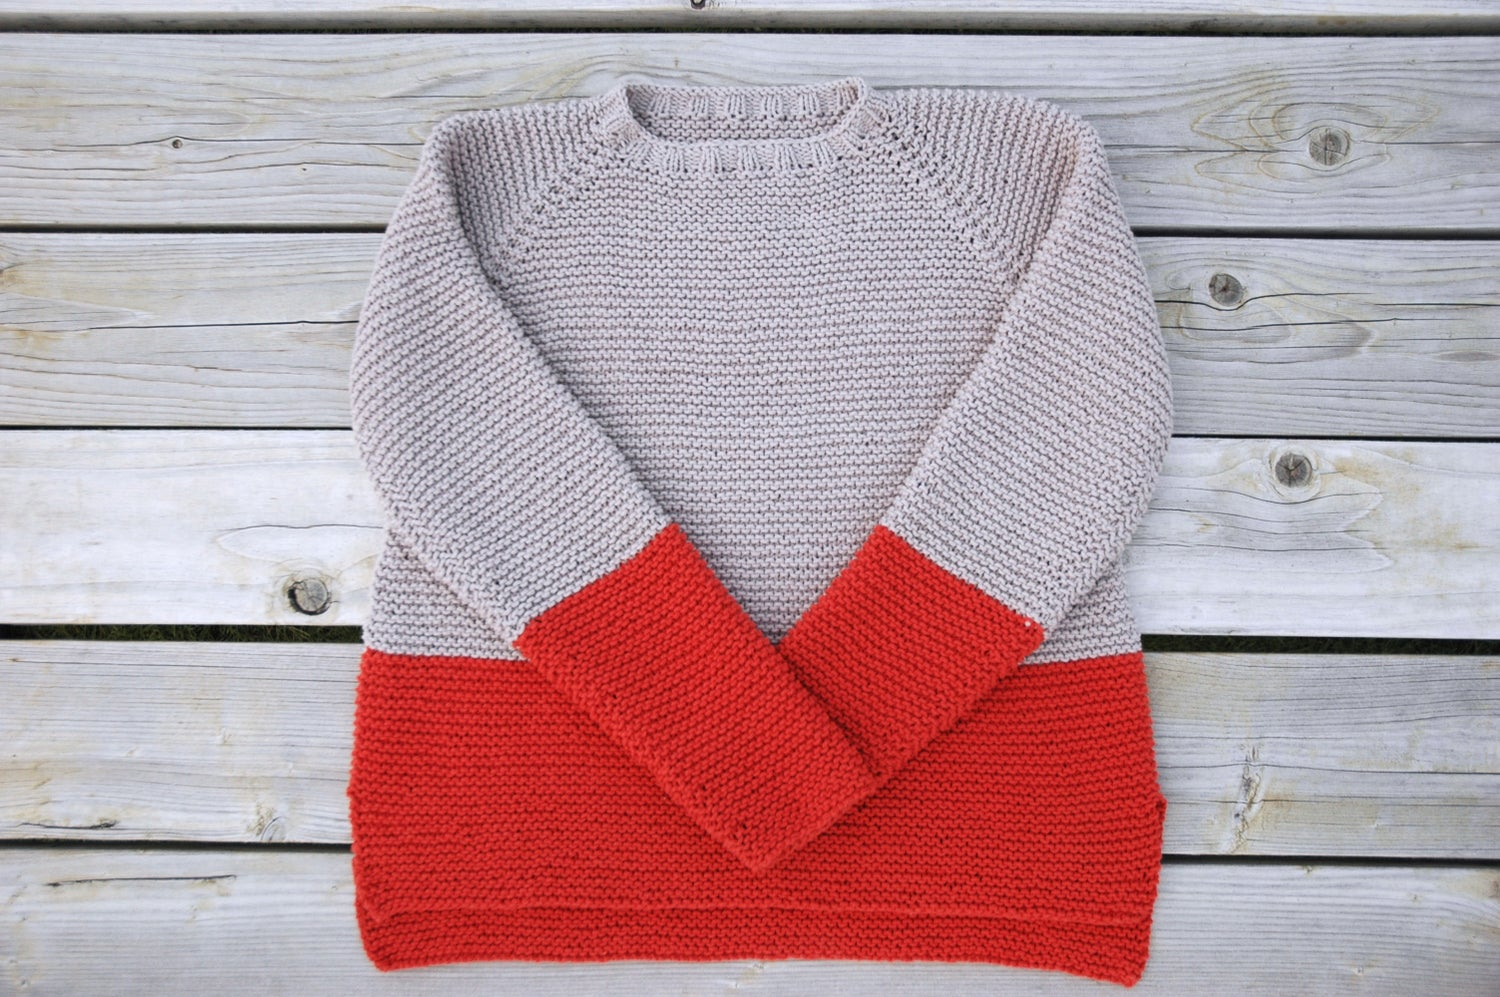 Image of Plowline Raglan Sweater Pattern (PDF)